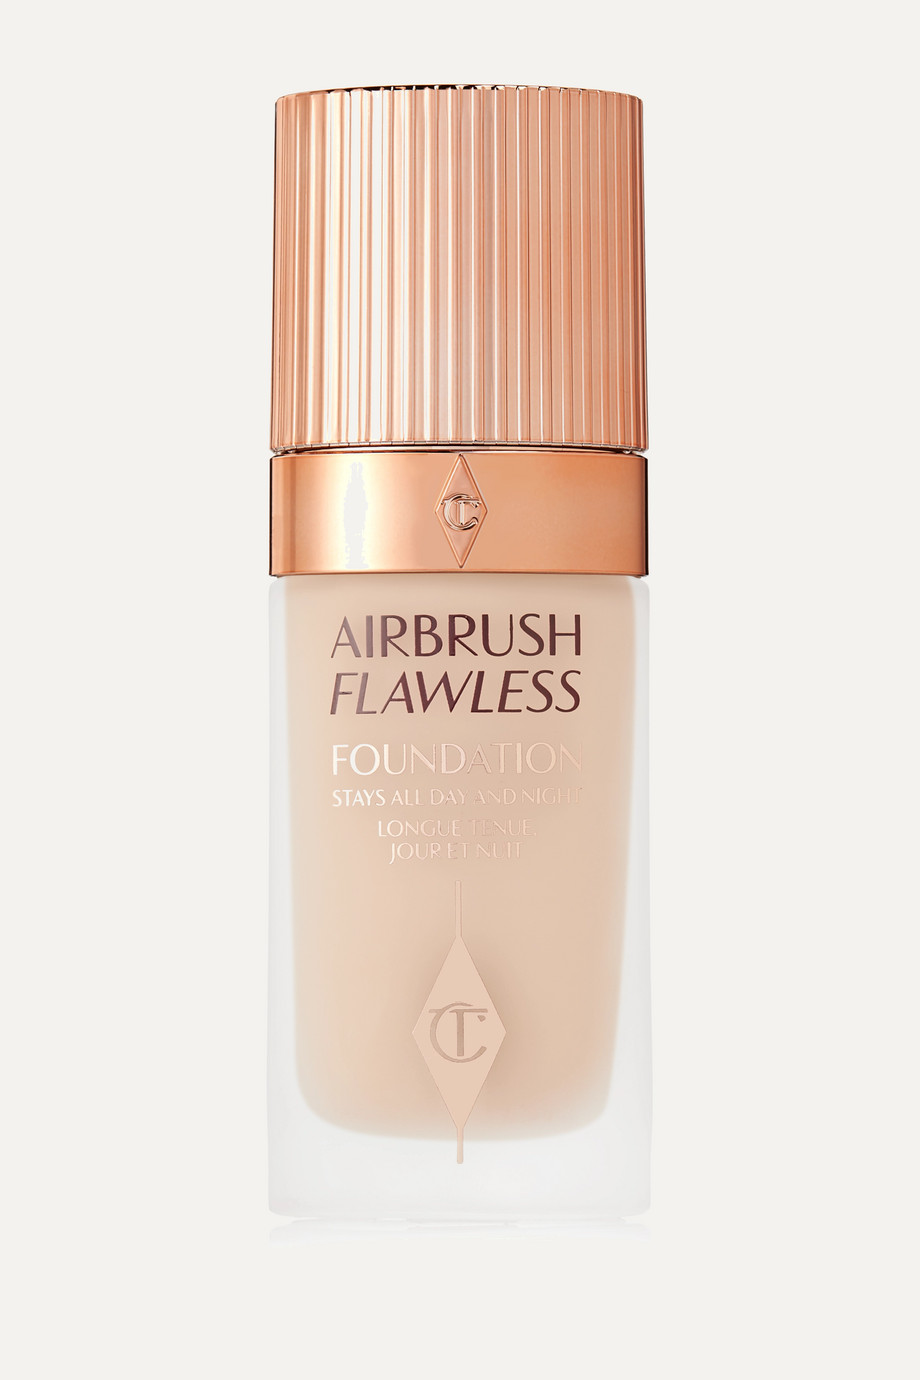 Charlotte Tilbury Airbrush Flawless Foundation – 2 Neutral, 30 ml – Foundation